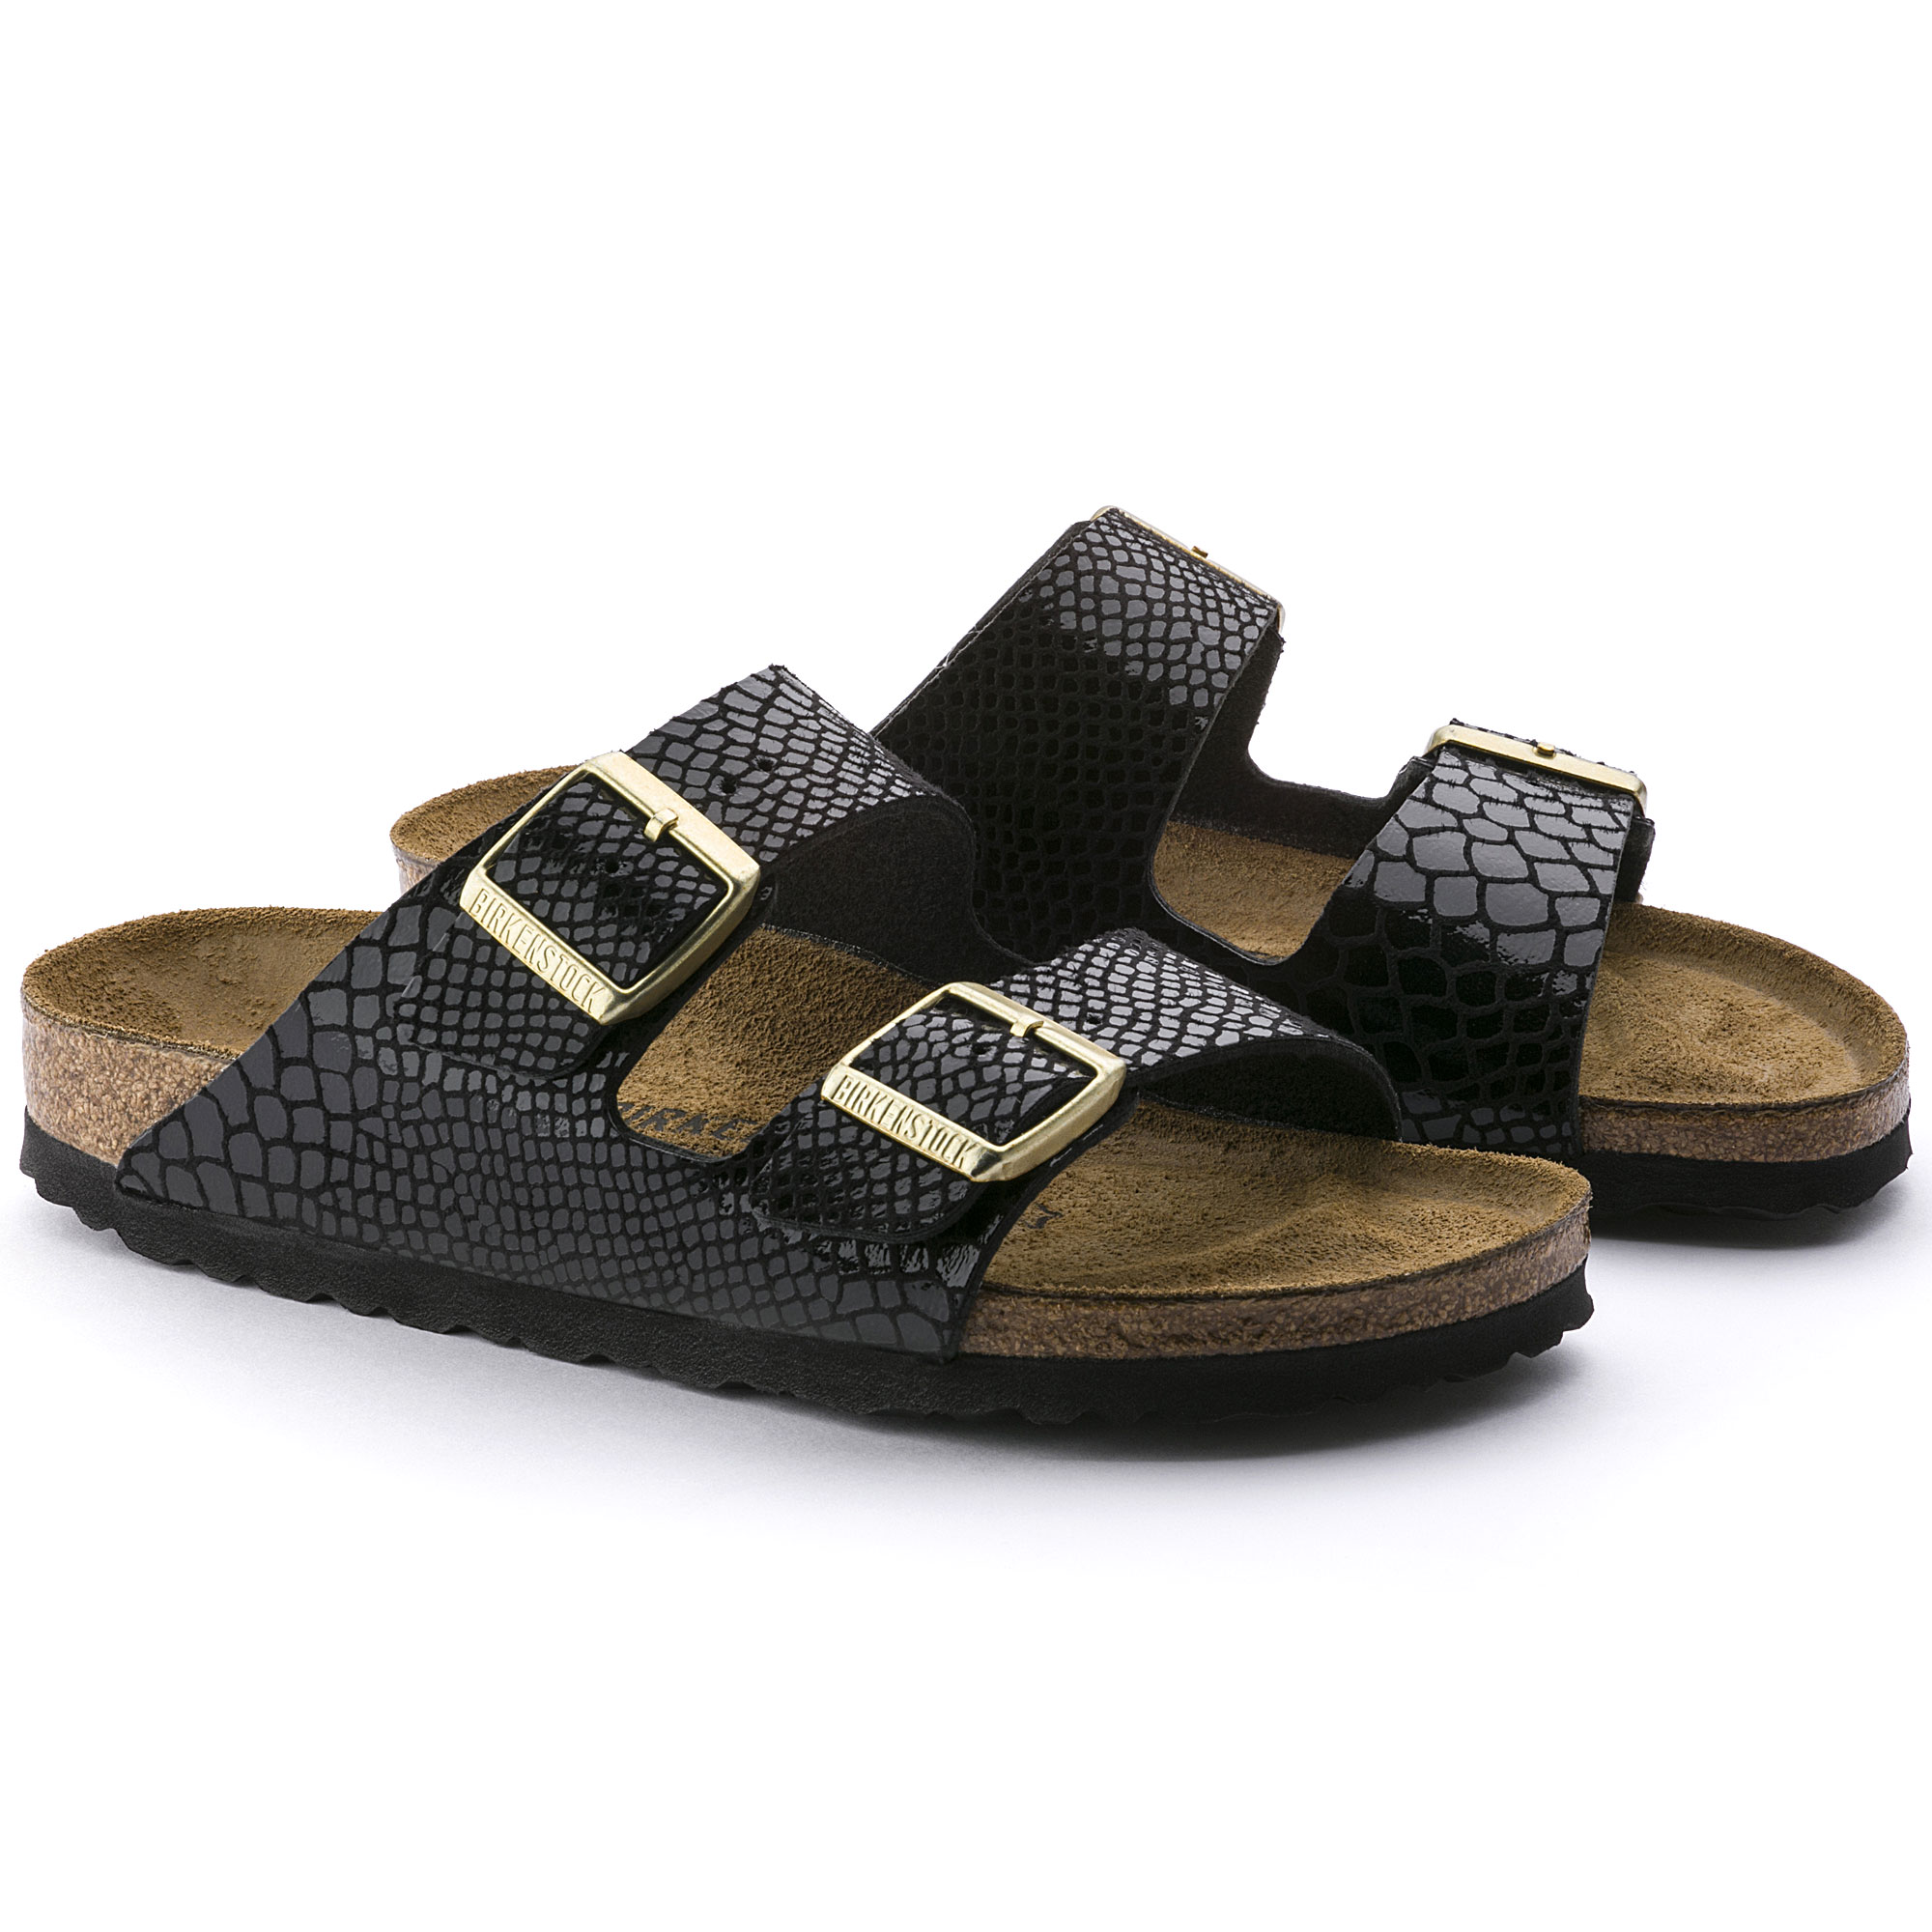 At Shiny Arizona BlackShop Online Birko Birkenstock Flor Snake rdxCeBo